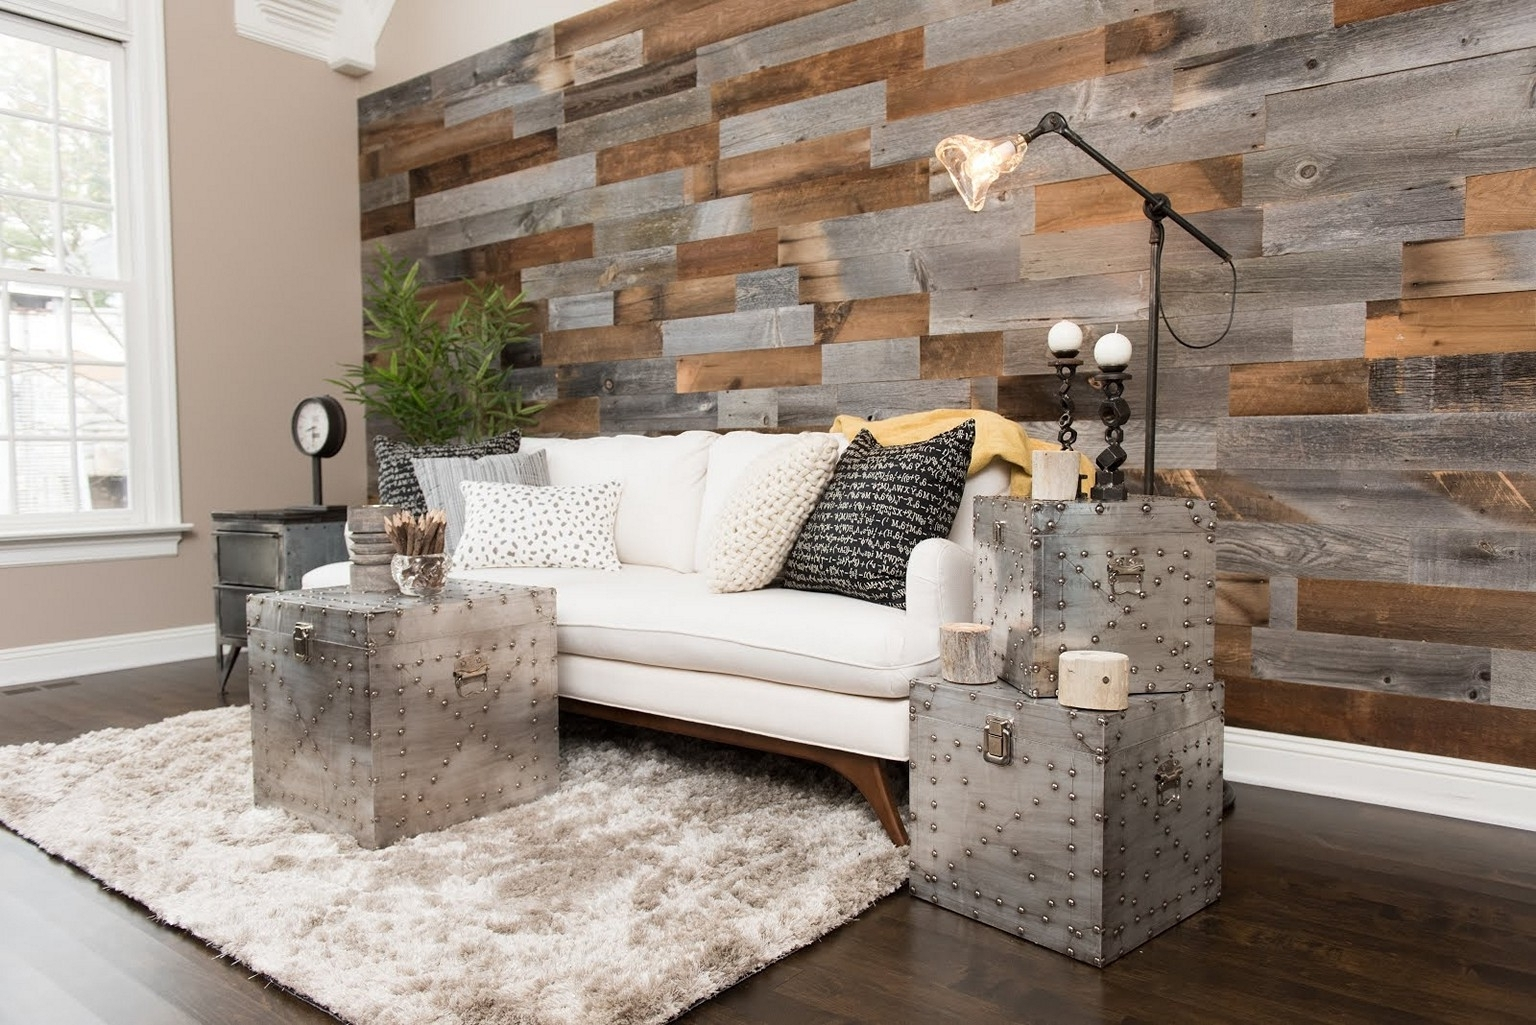 Barn Wood Wall Ideas • Walls Ideas Pertaining To Popular Wood Wall Accents (Gallery 8 of 15)